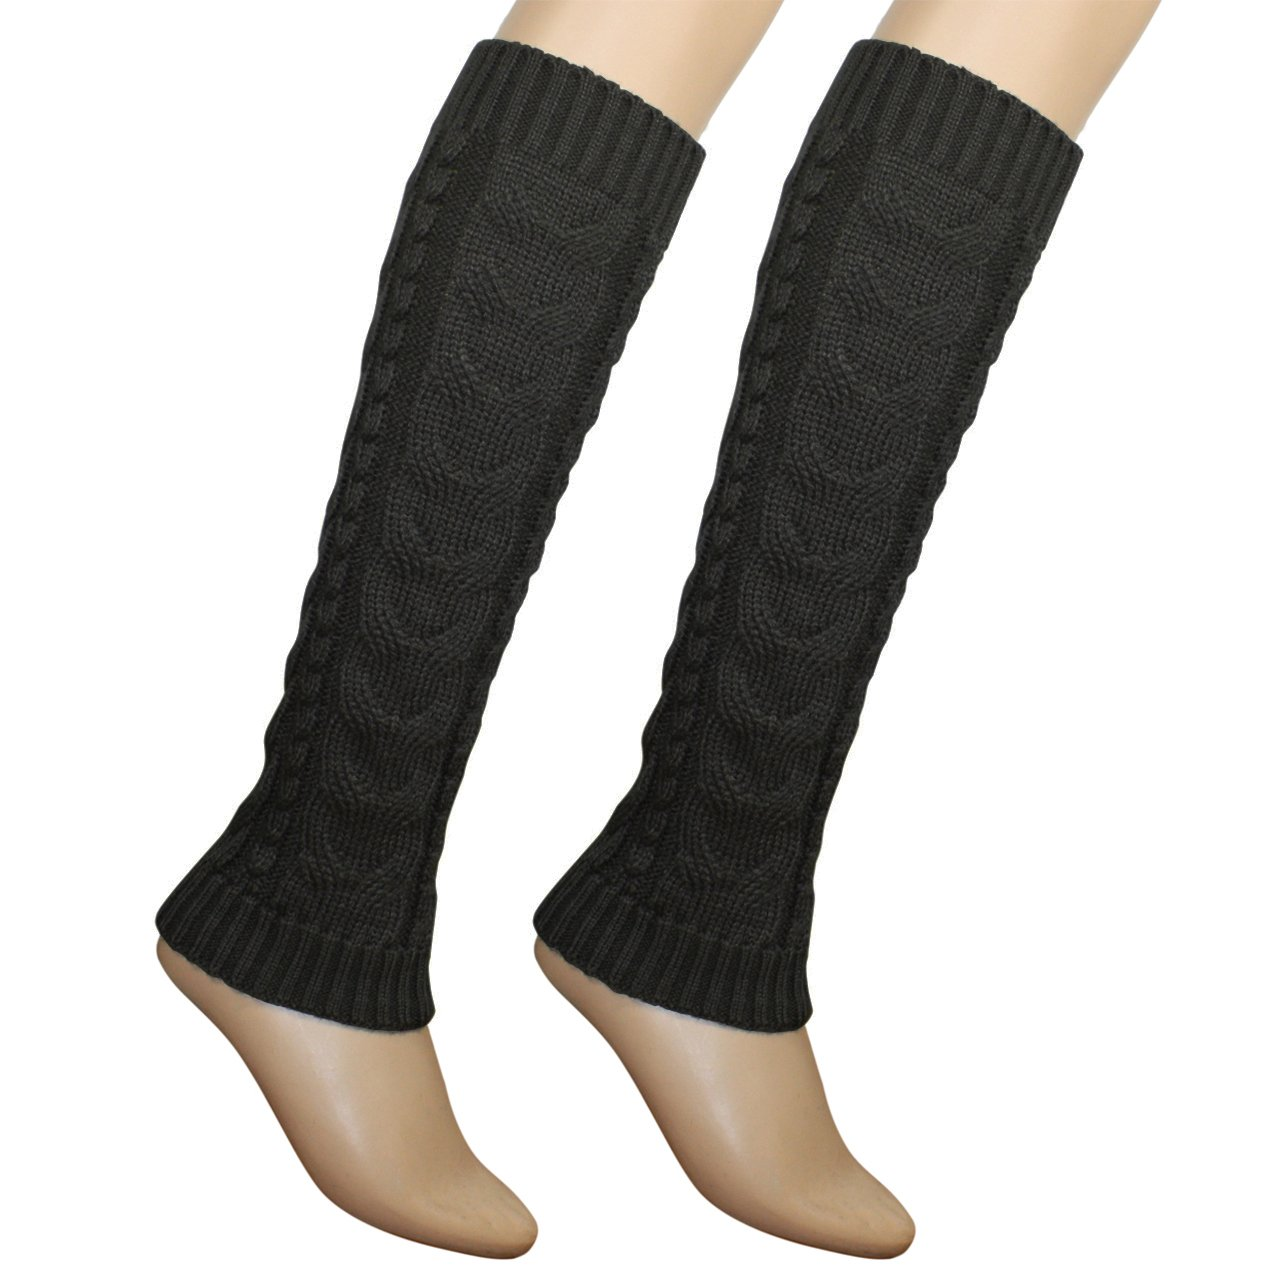 Triple Pompons Classic Boot Shaft Style Ribbed Knit Soft Acrylic Leg Warmer - Brown